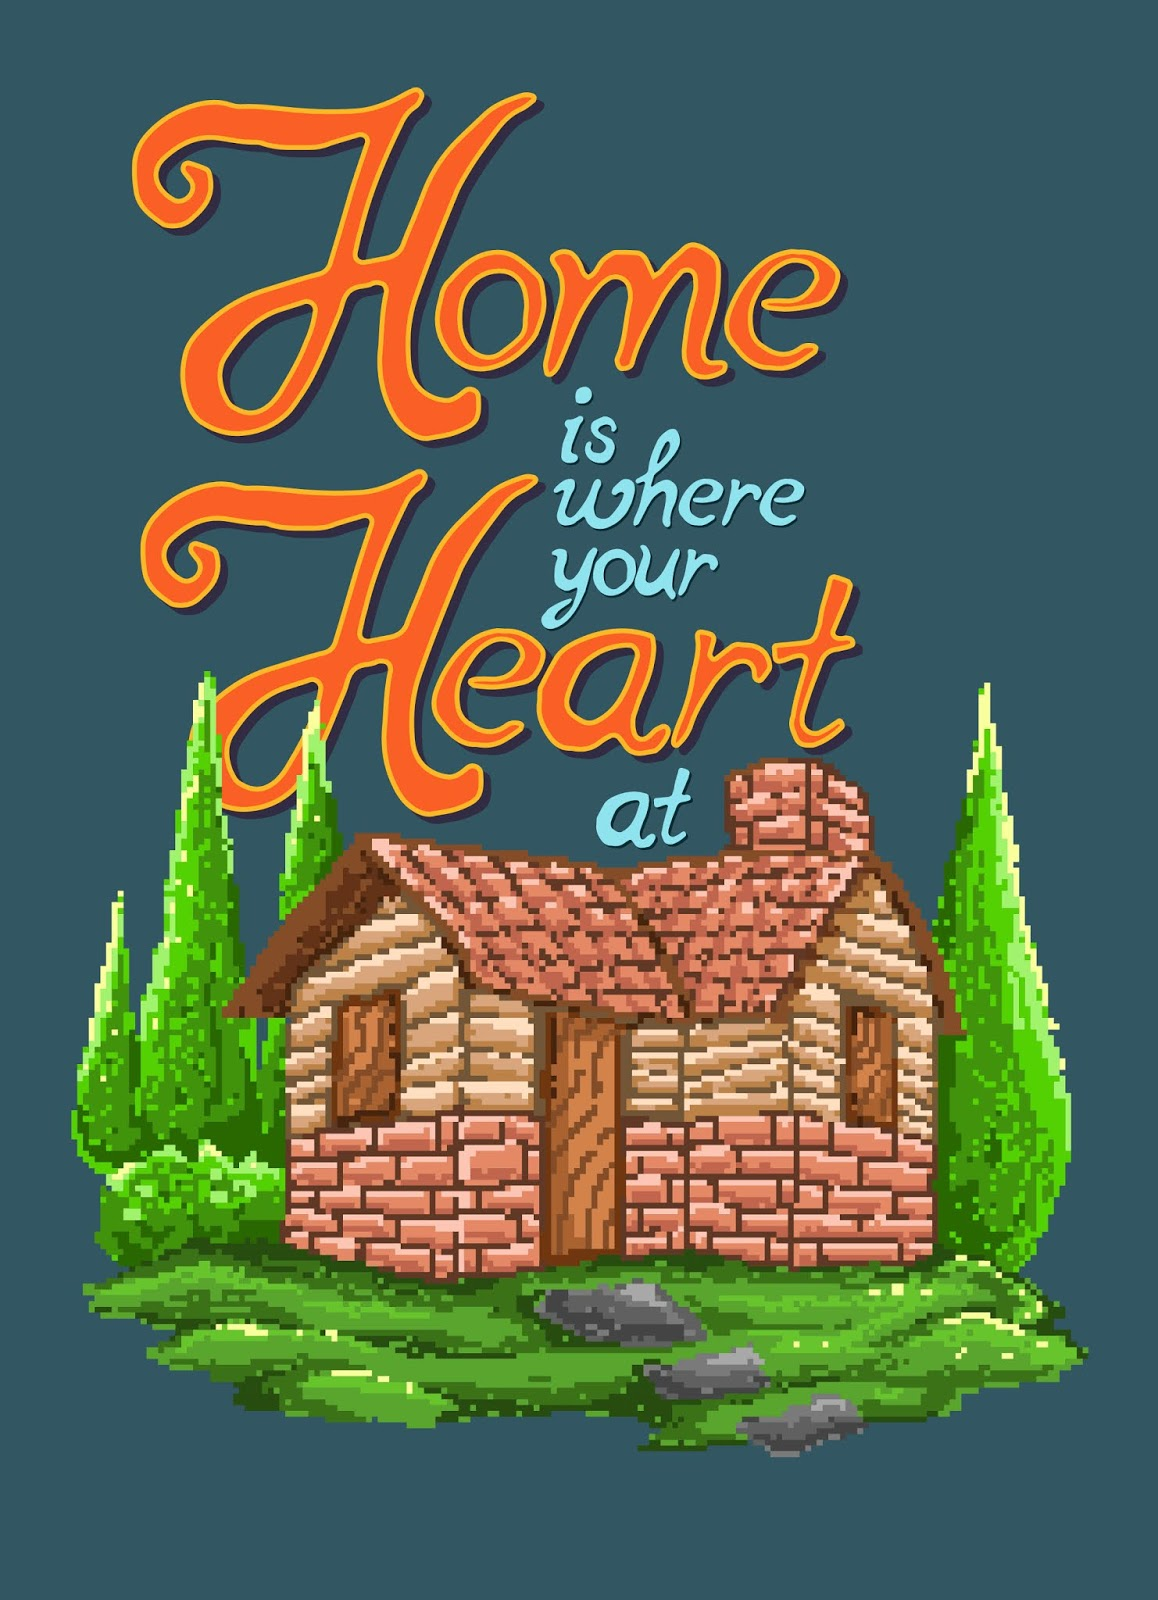 Pixel Art Vector Illustration House Village With Motivational Quote 90s Graphic Pixel Art Video Game Style Free Download Vector CDR, AI, EPS and PNG Formats